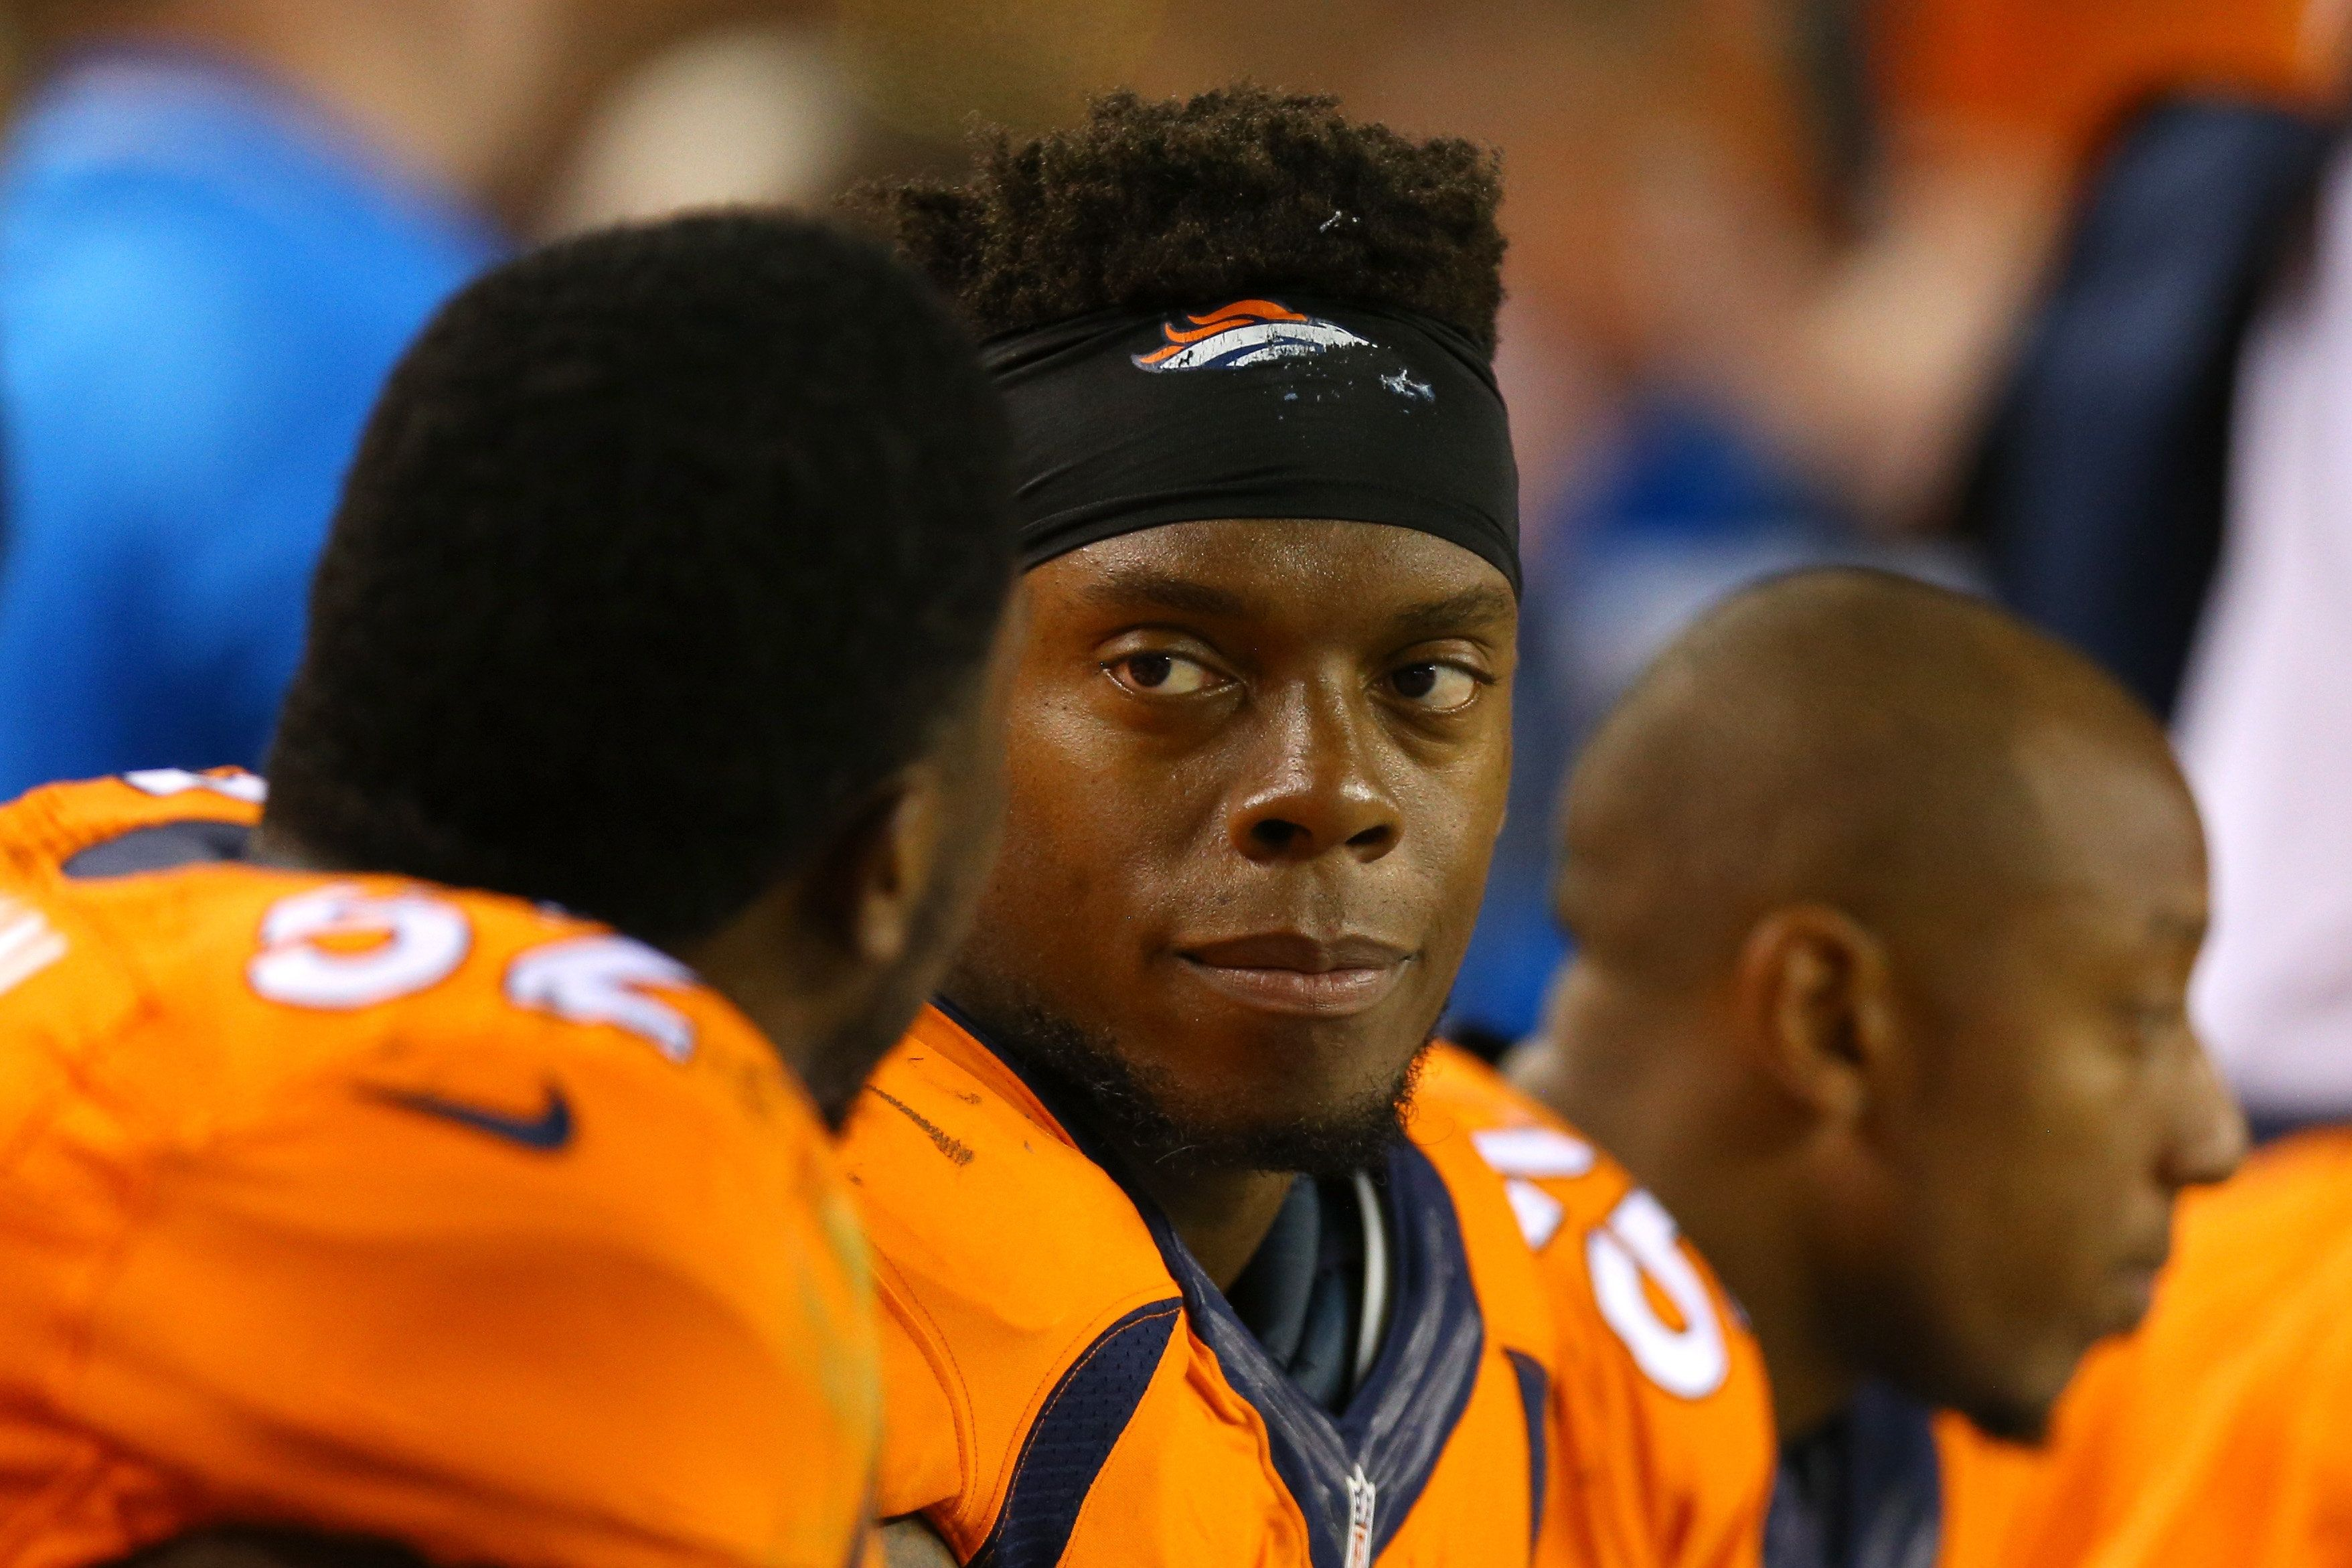 Brandon Marshall of the Denver Broncos looks on from the bench at Mile High Stadium earlier this yearin Denver, Colorad